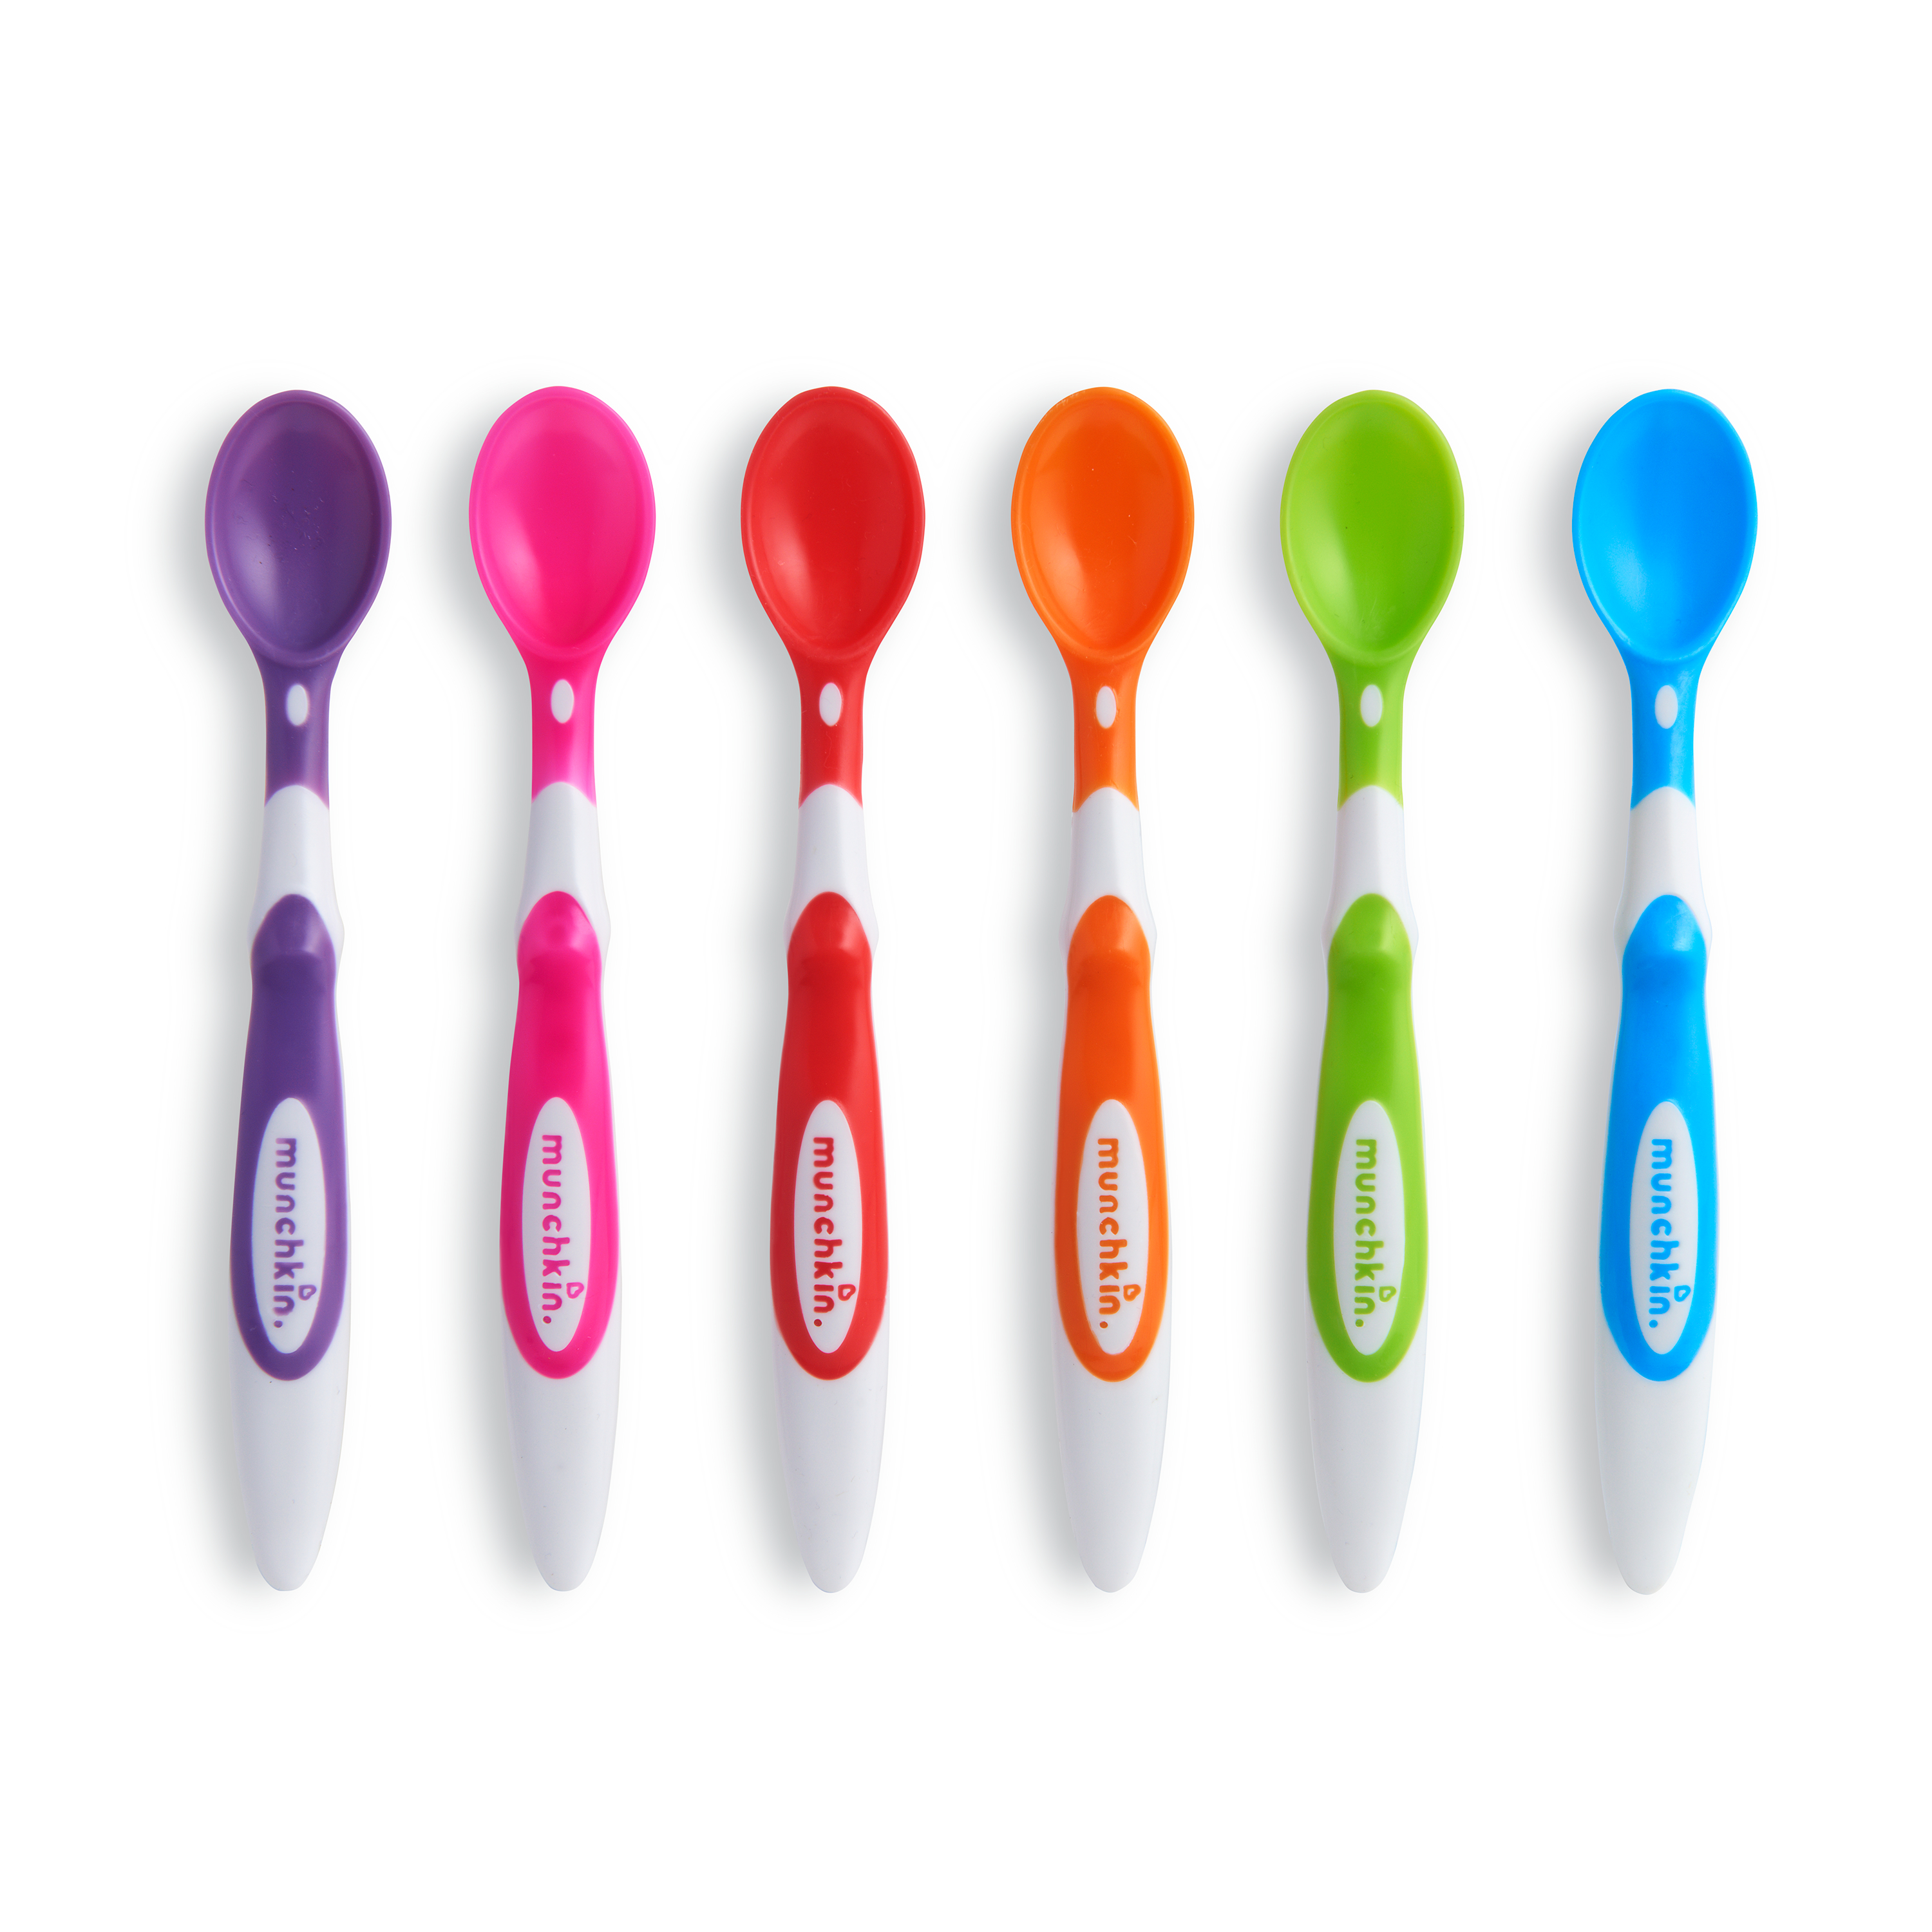 Munchkin Soft Tip Infant Spoons - 6 Pack